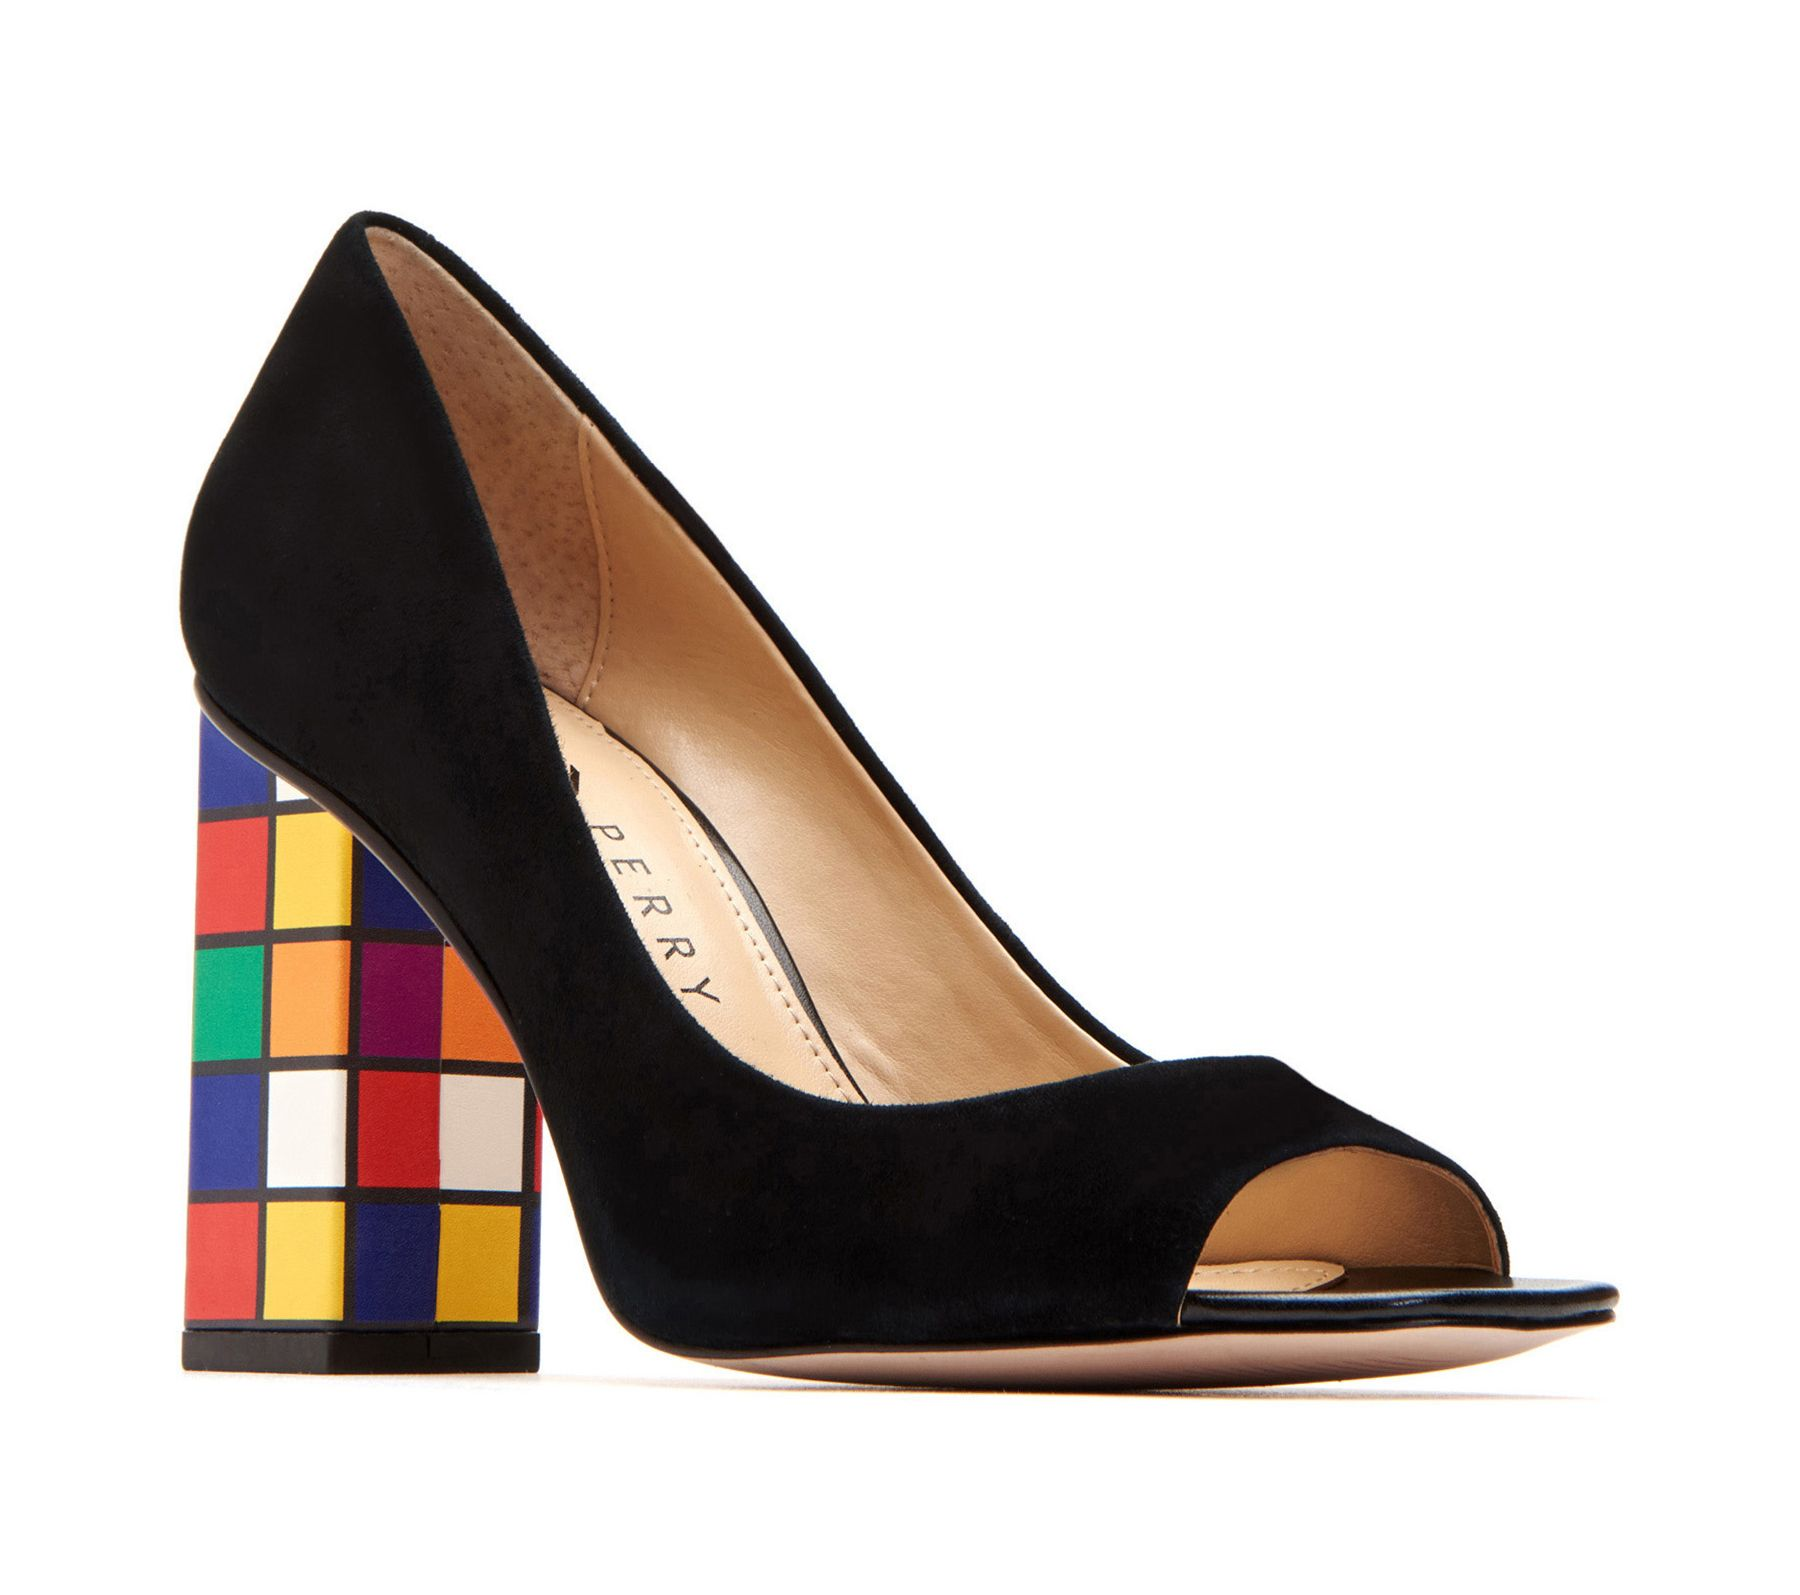 71f87f95444 katy perry collections the caitlin black rubik s cube heels ...